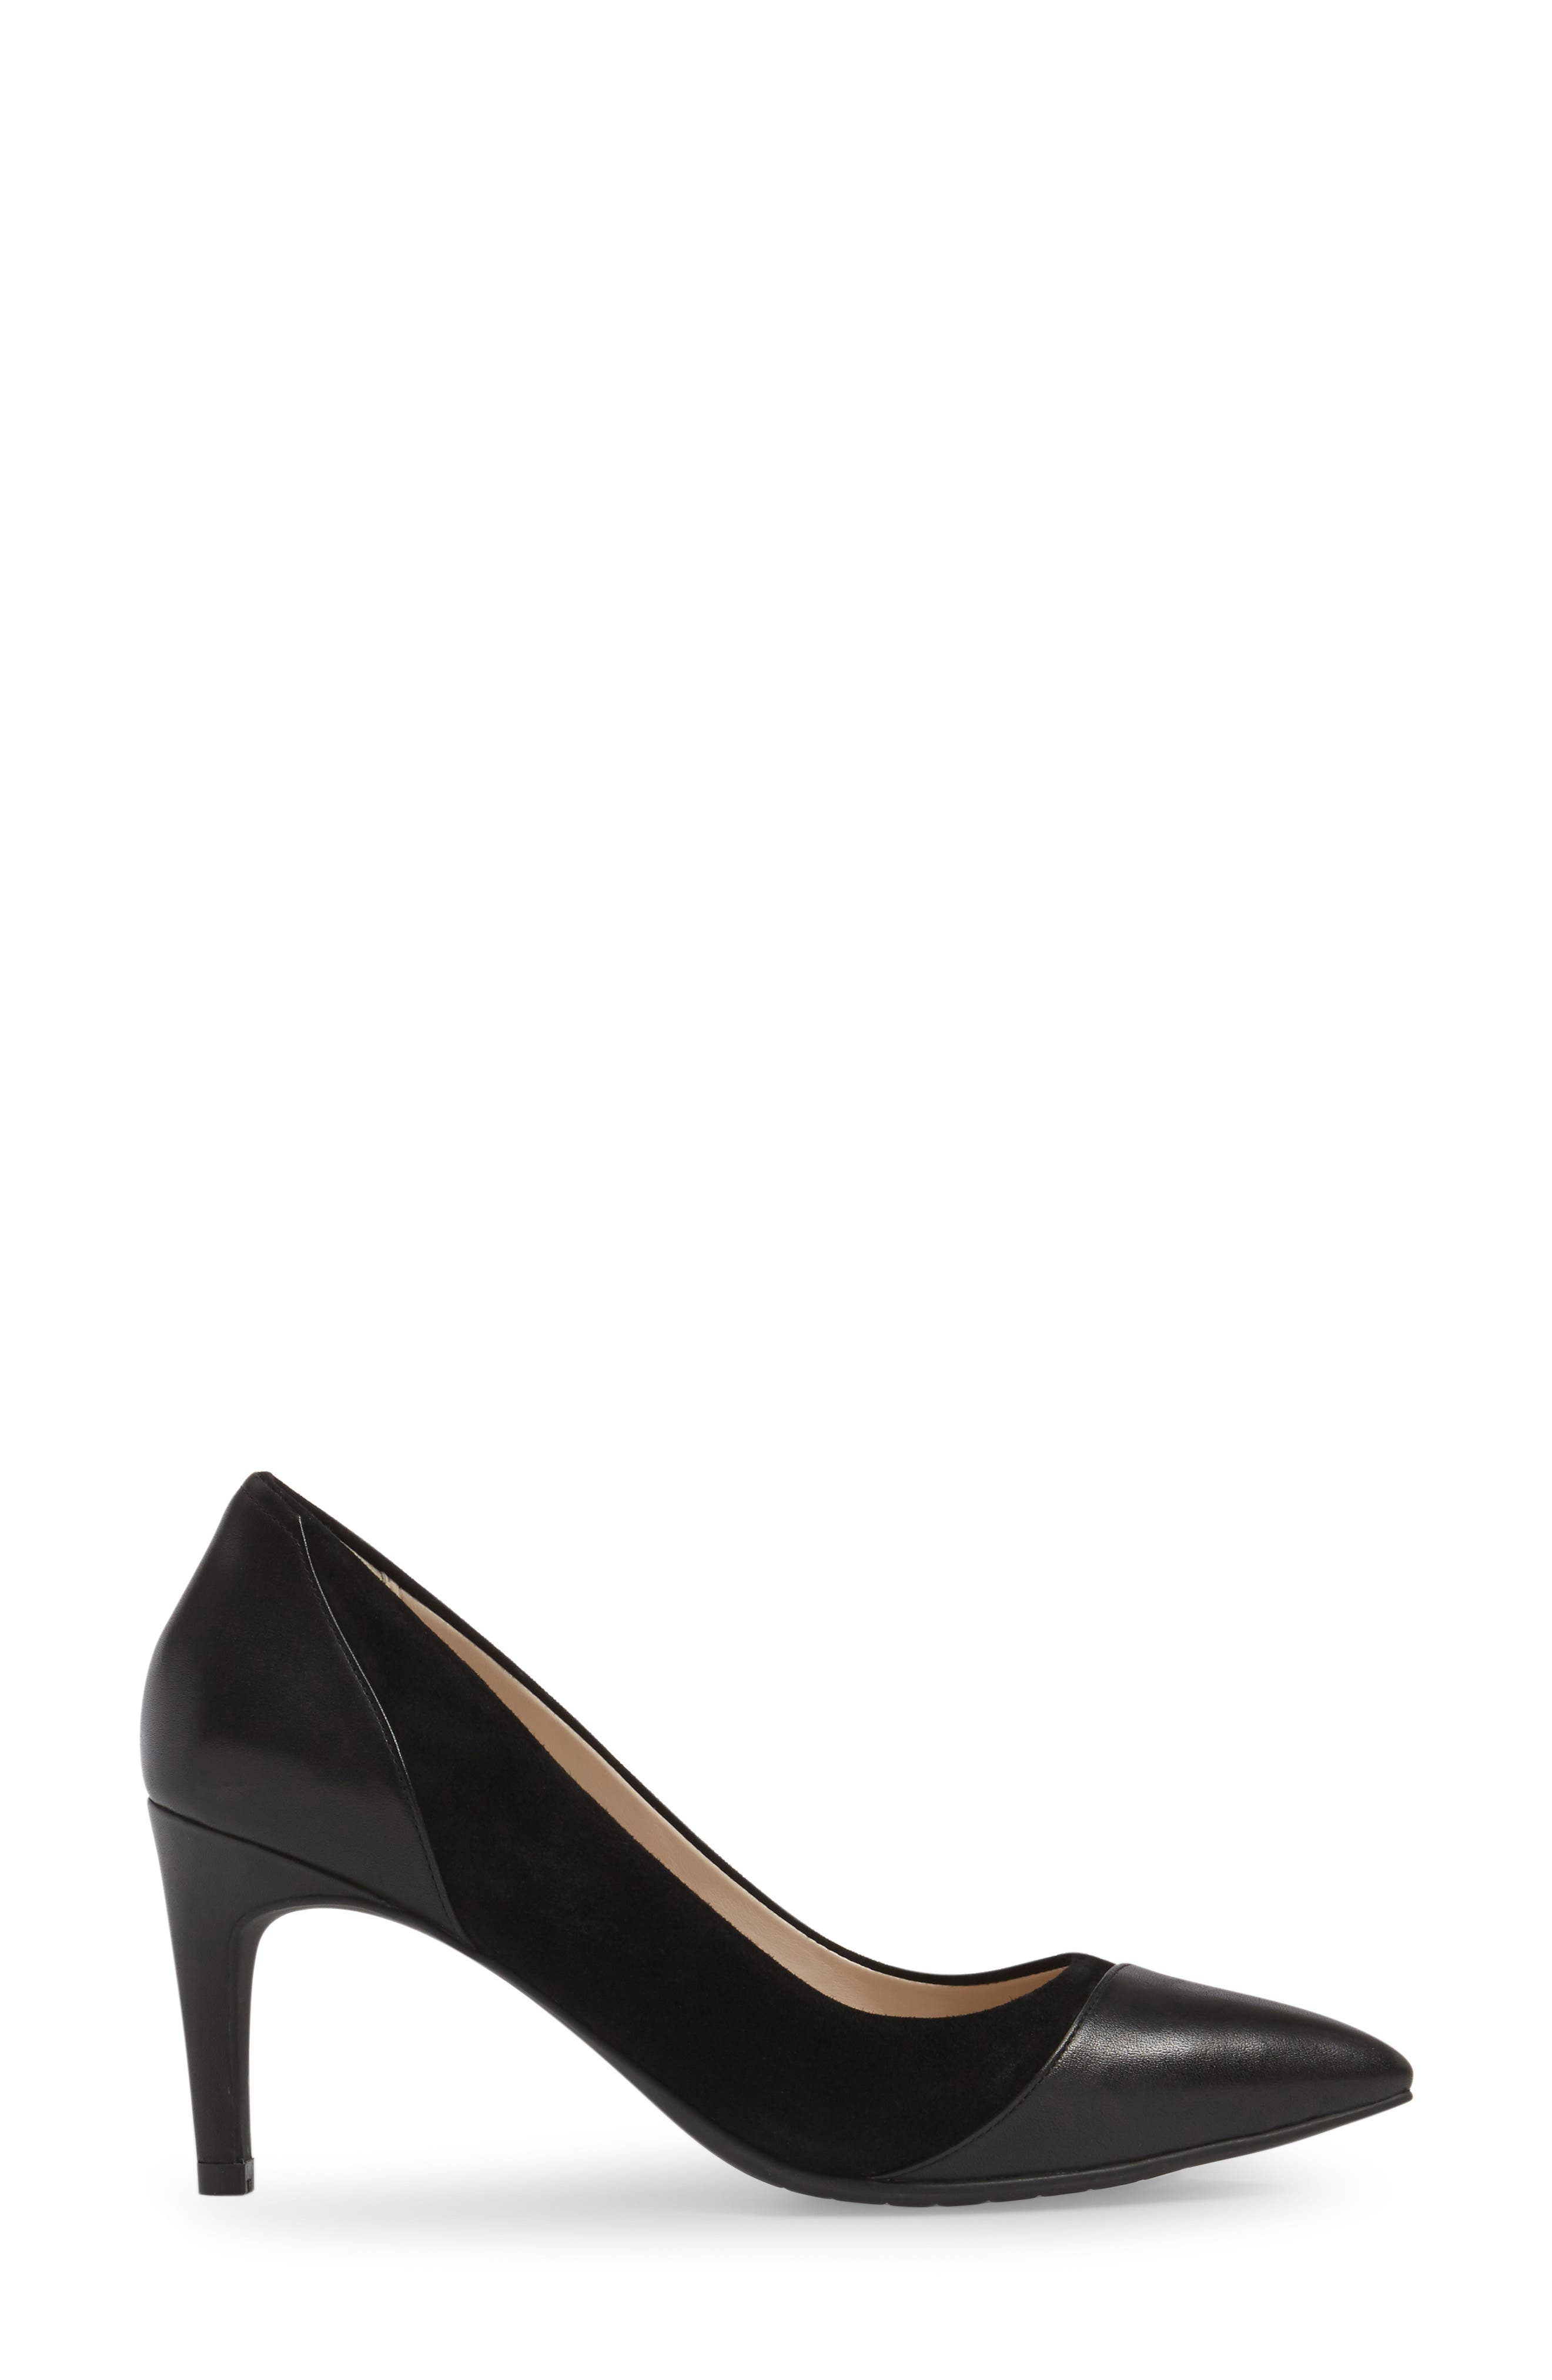 Shayla Pointy Toe Pump,                             Alternate thumbnail 3, color,                             Black Suede